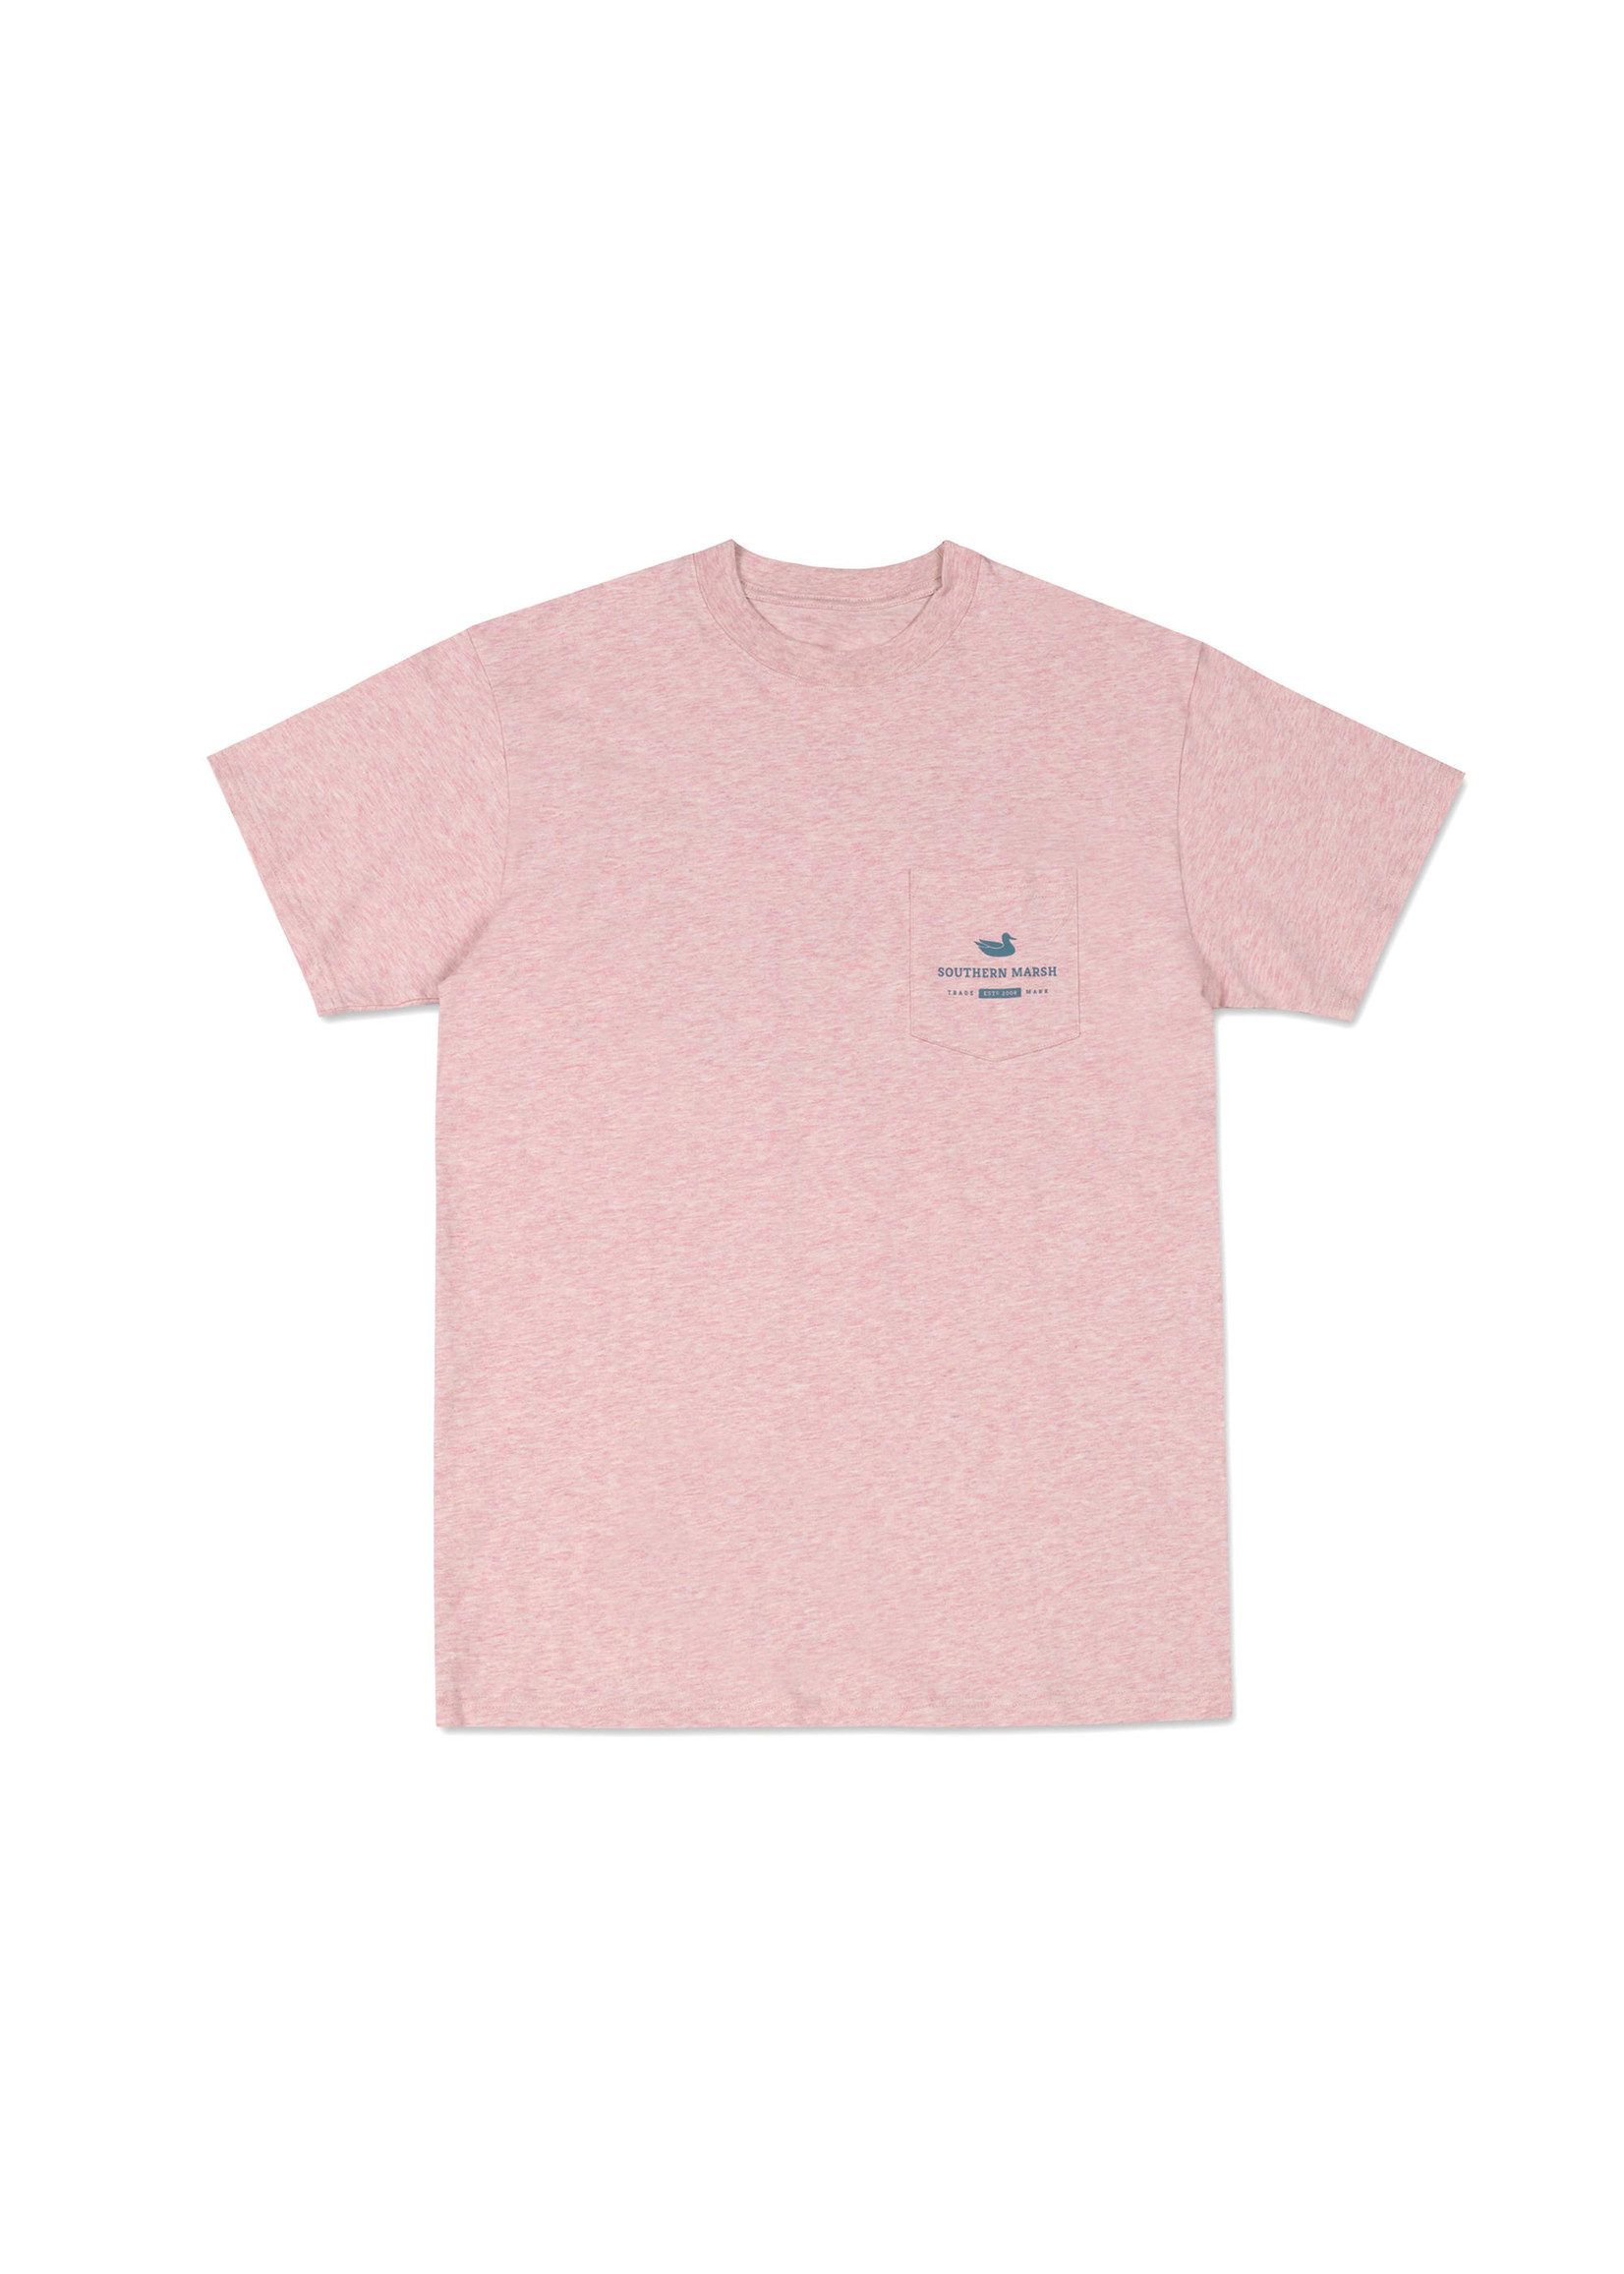 Southern Marsh Fading Fast Tee